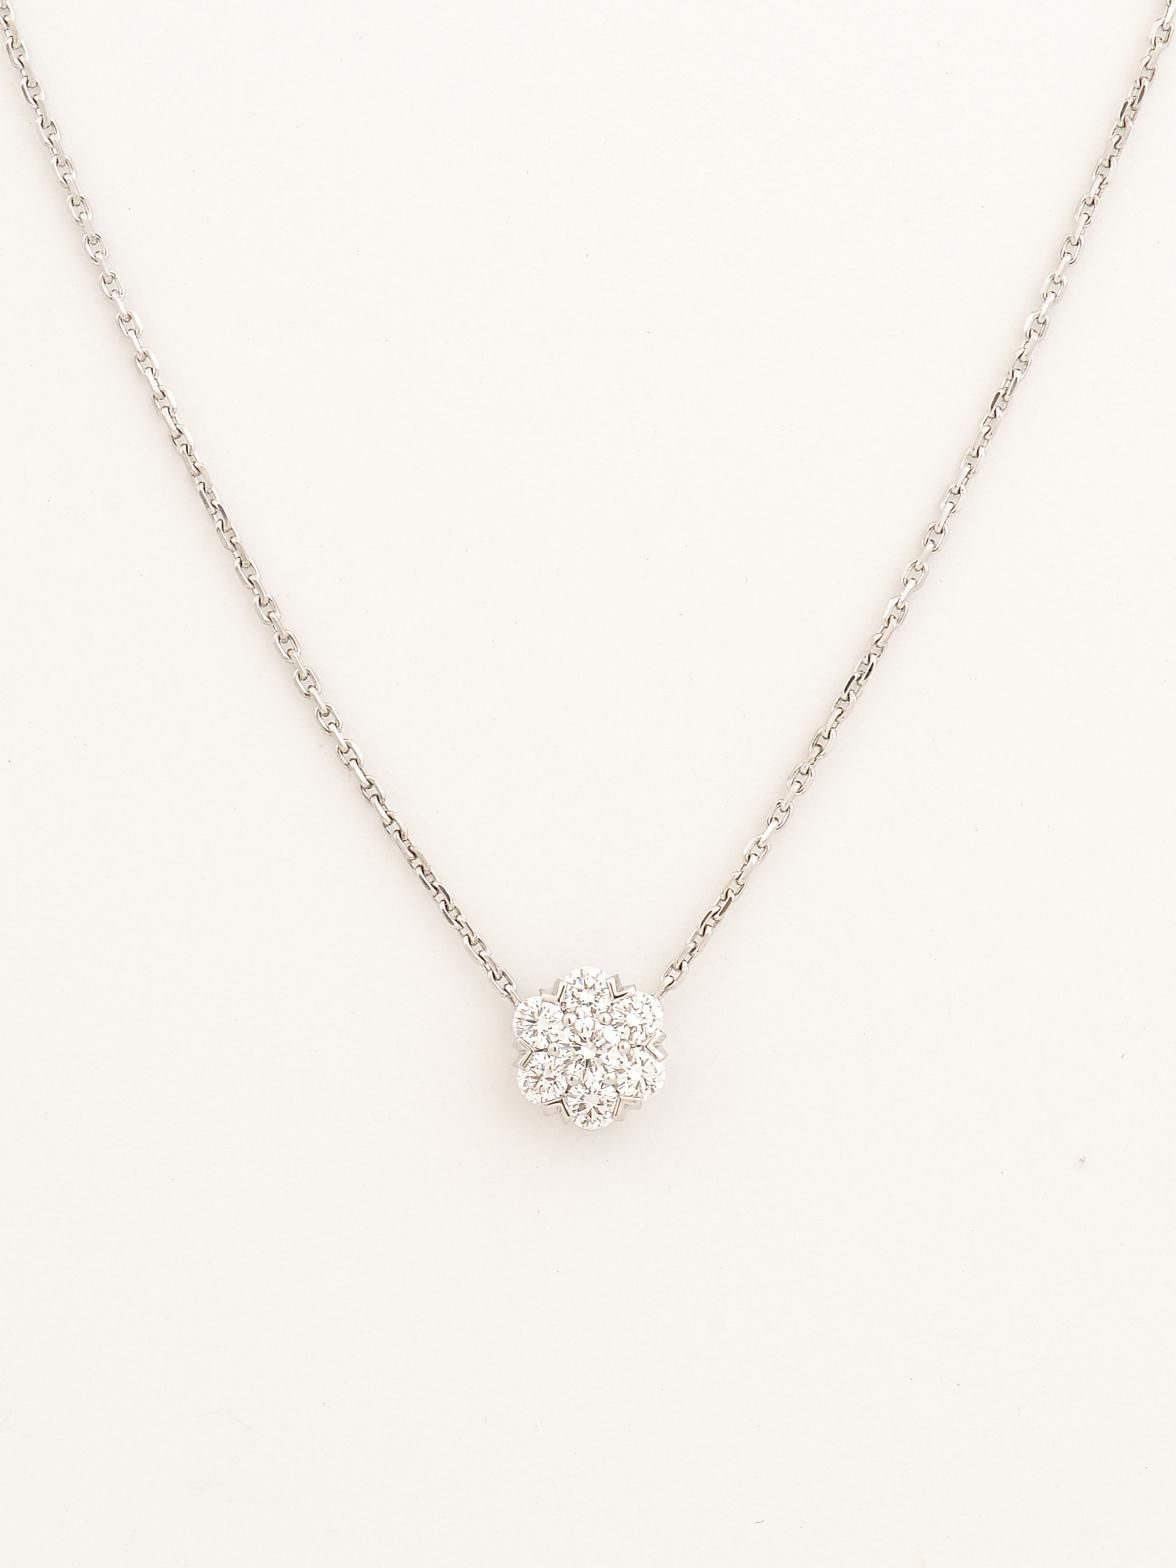 Van Cleef & Arpels 18k White Gold Small Fleurette Diamond For Latest Small Diamond Necklaces (View 8 of 25)